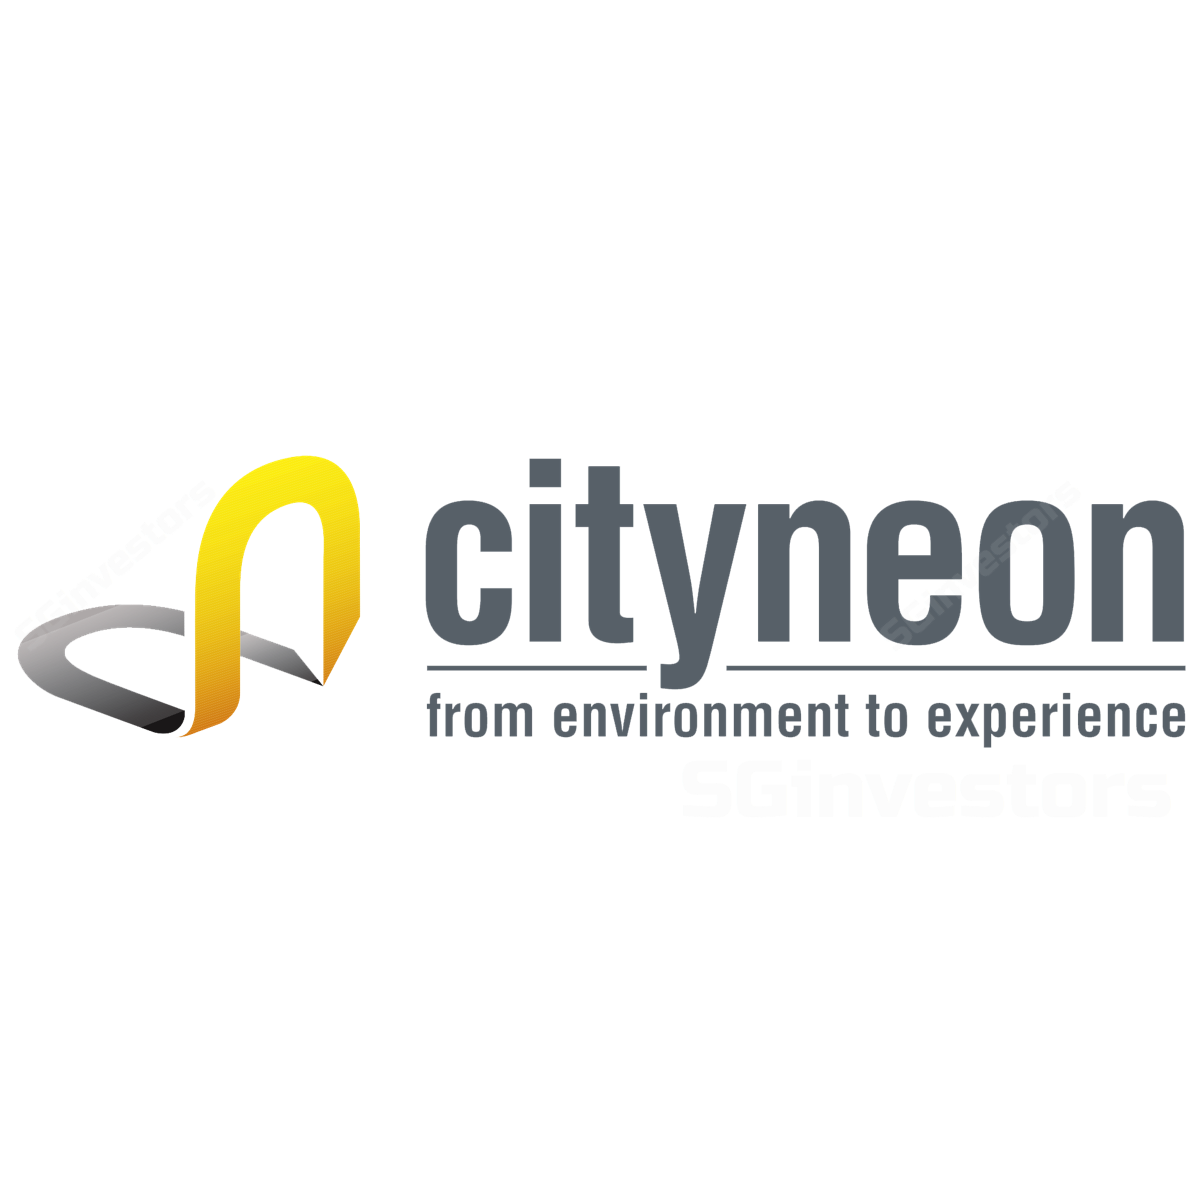 Cityneon Holdings - DBS Vickers 2017-11-24: Building Growth Platform